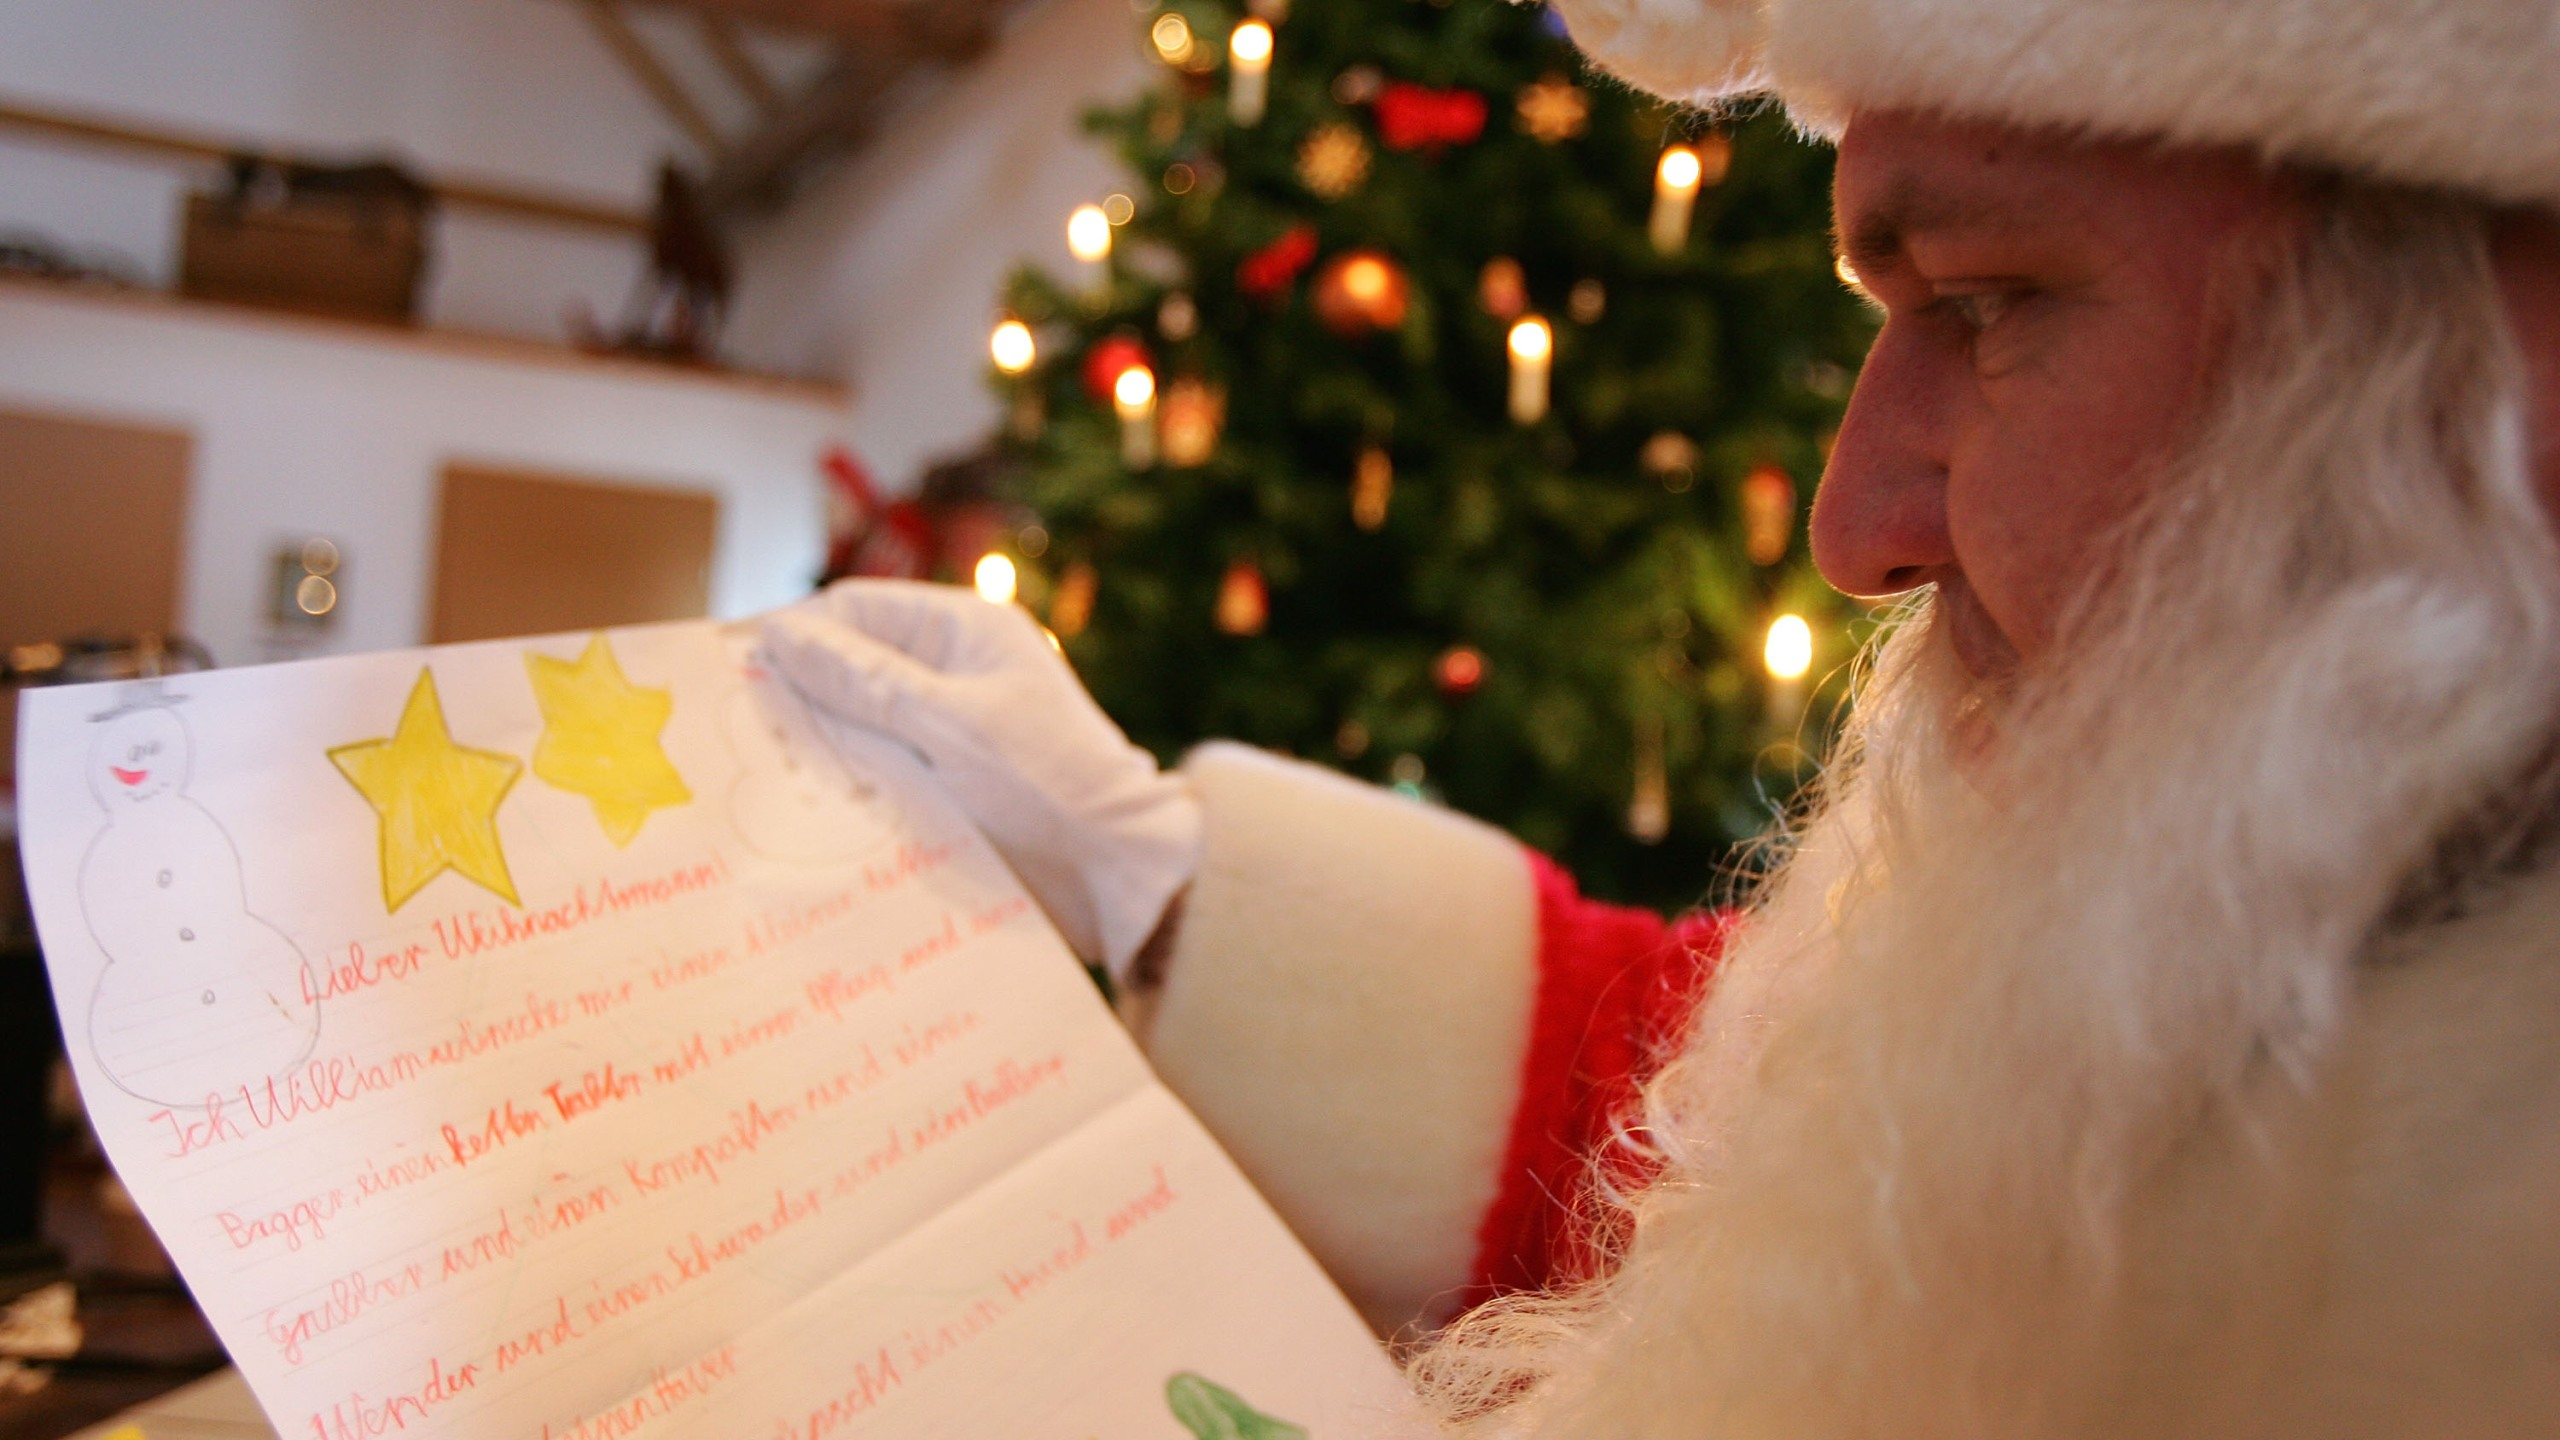 Usps Hours Christmas Eve.Become An Elf For Usps And Help Santa Write Letters To Children